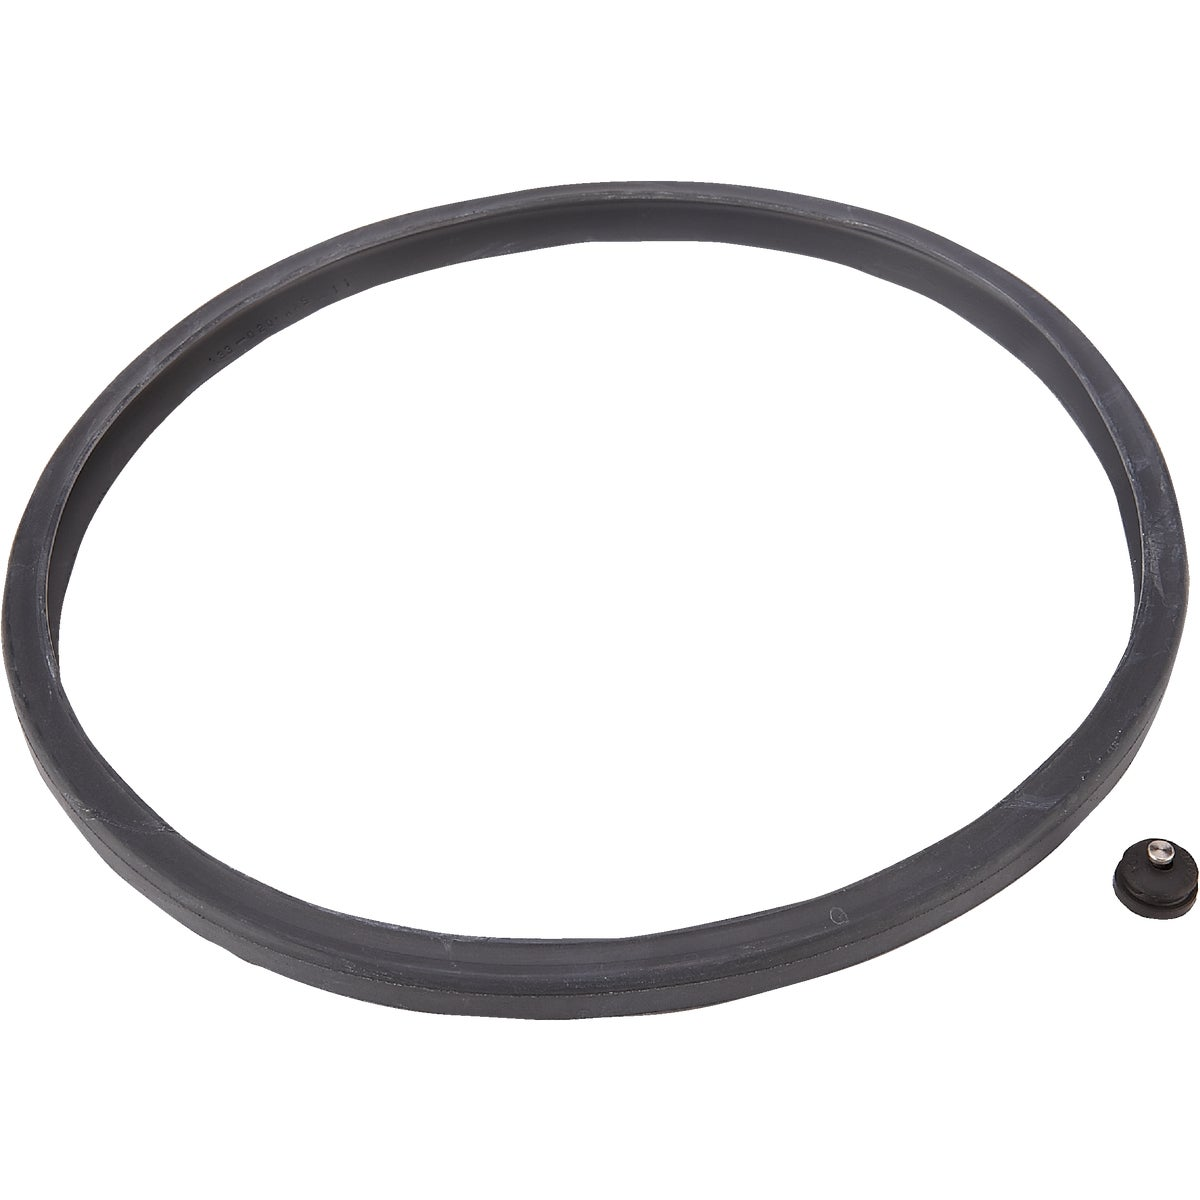 SEALING RING - 09906 by National Presto